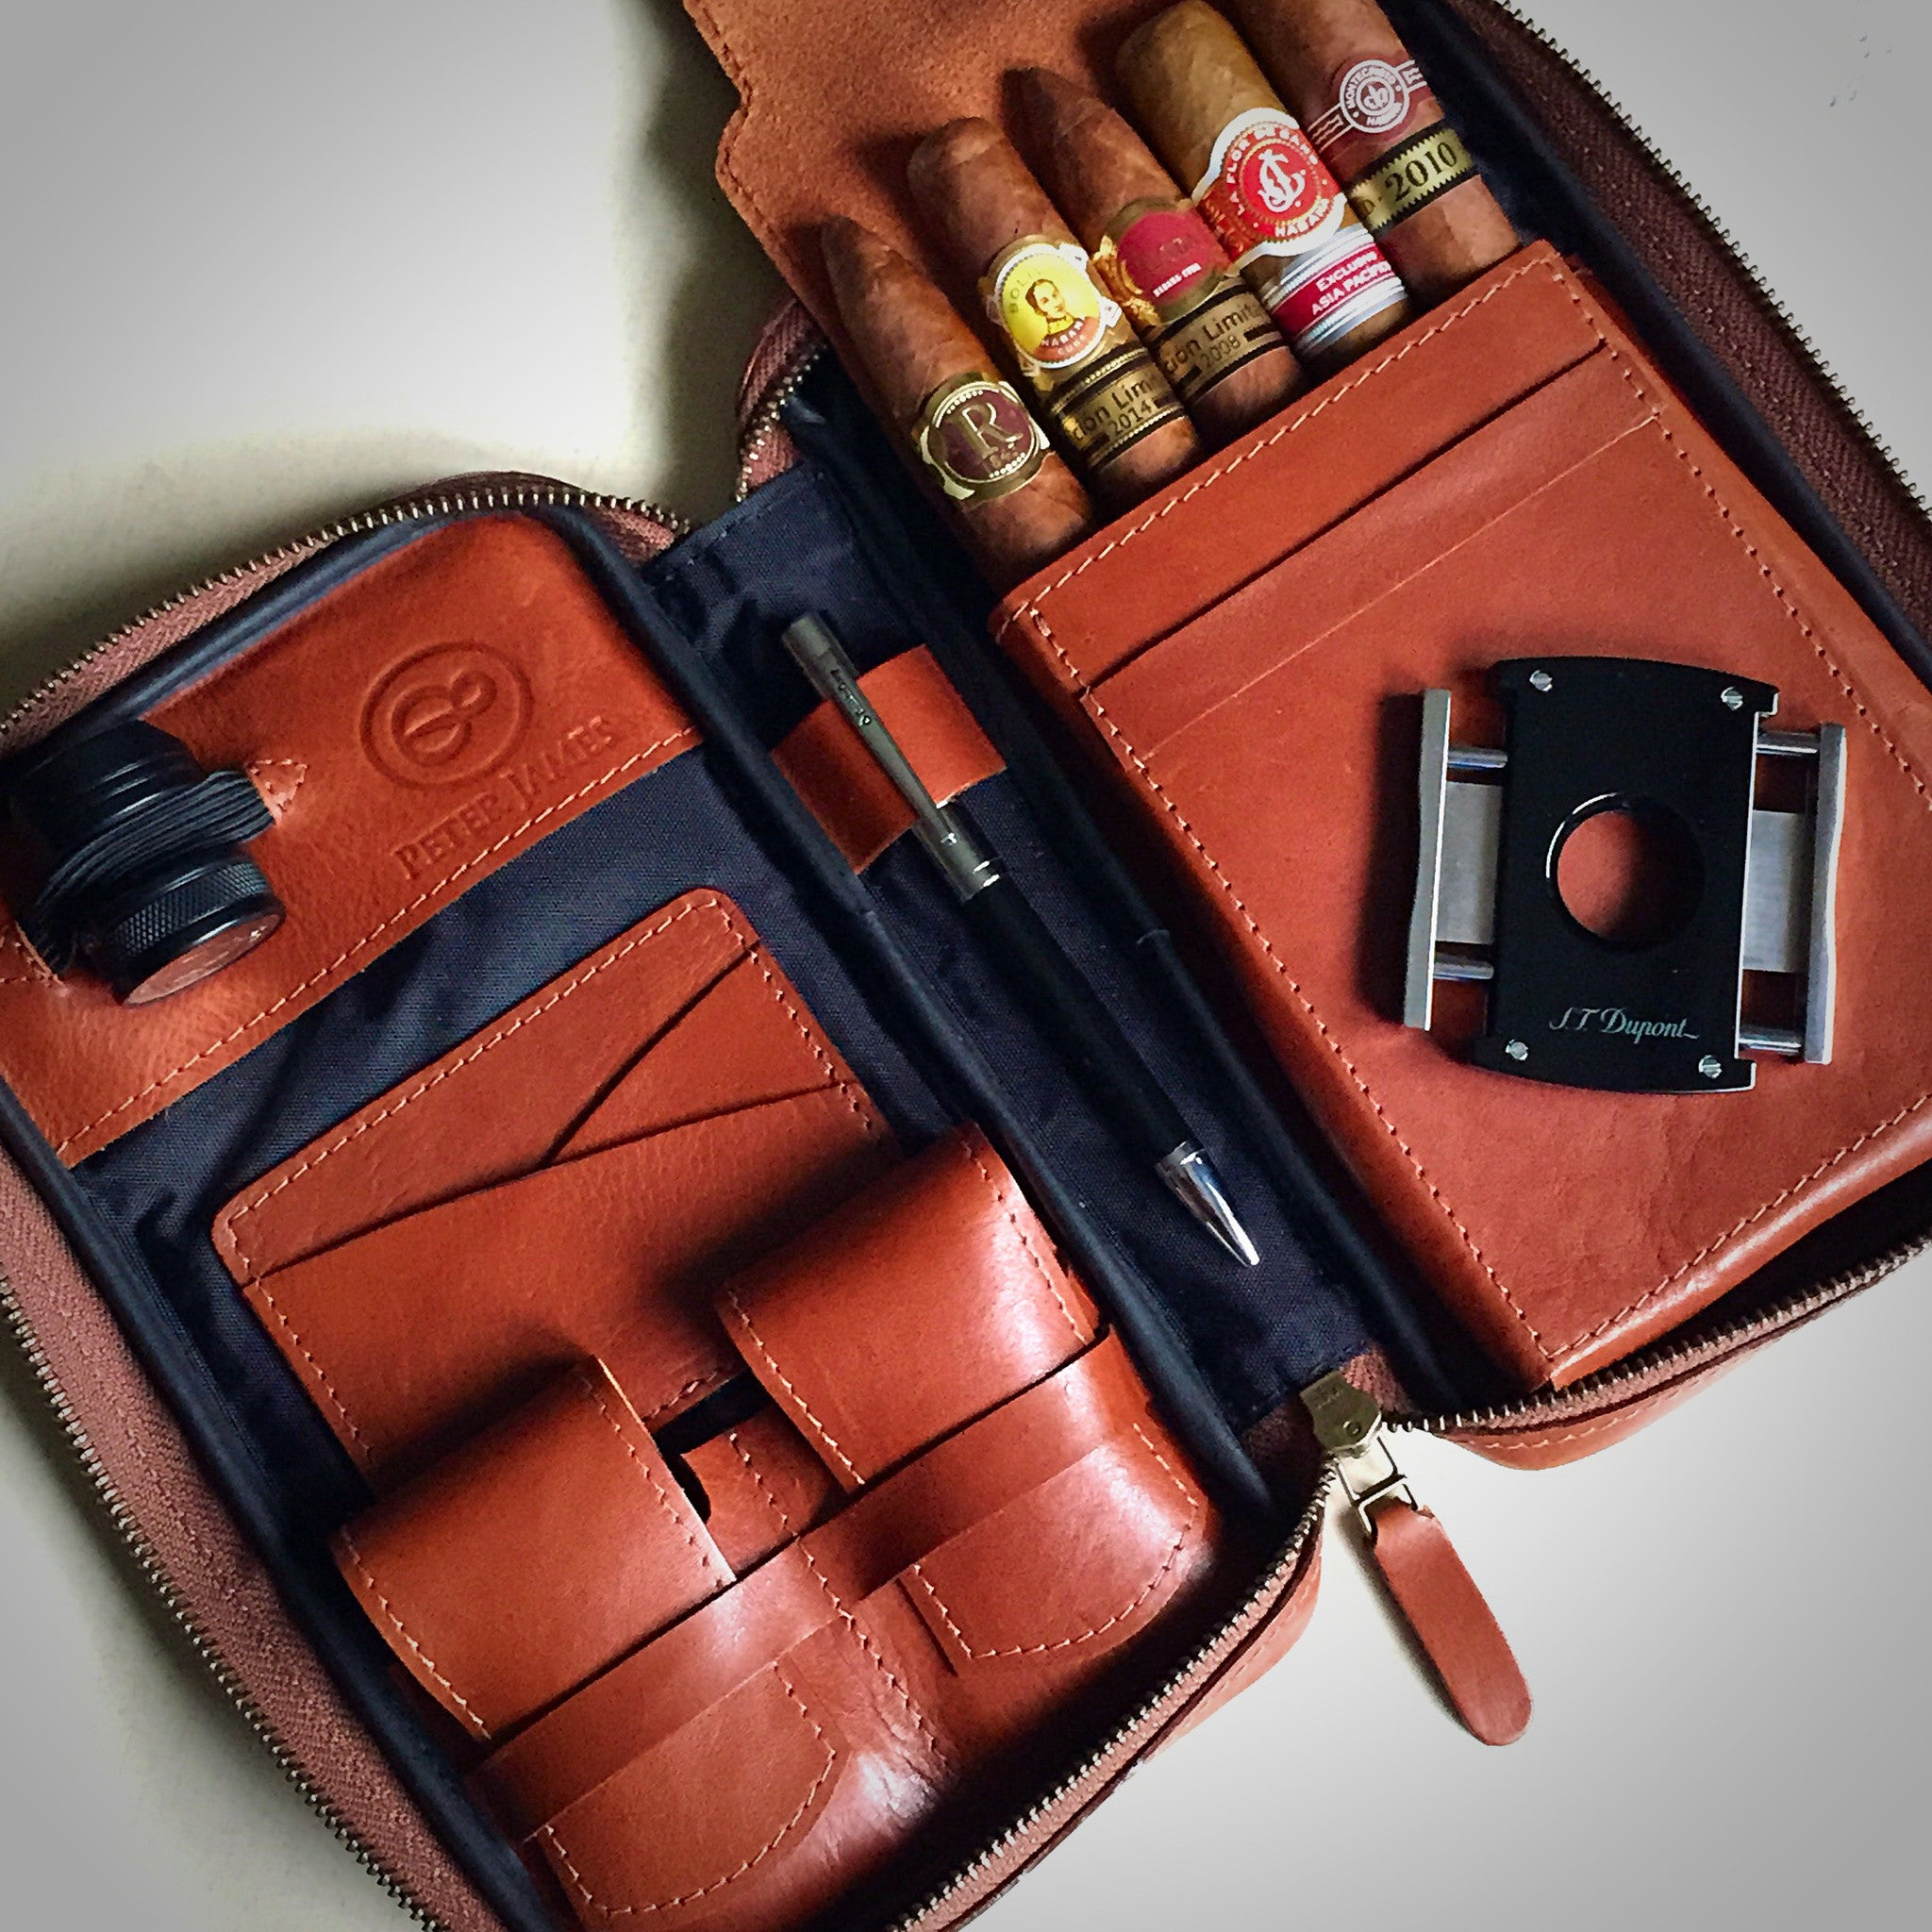 Cigar case by Peter James By Laurent Chazoule